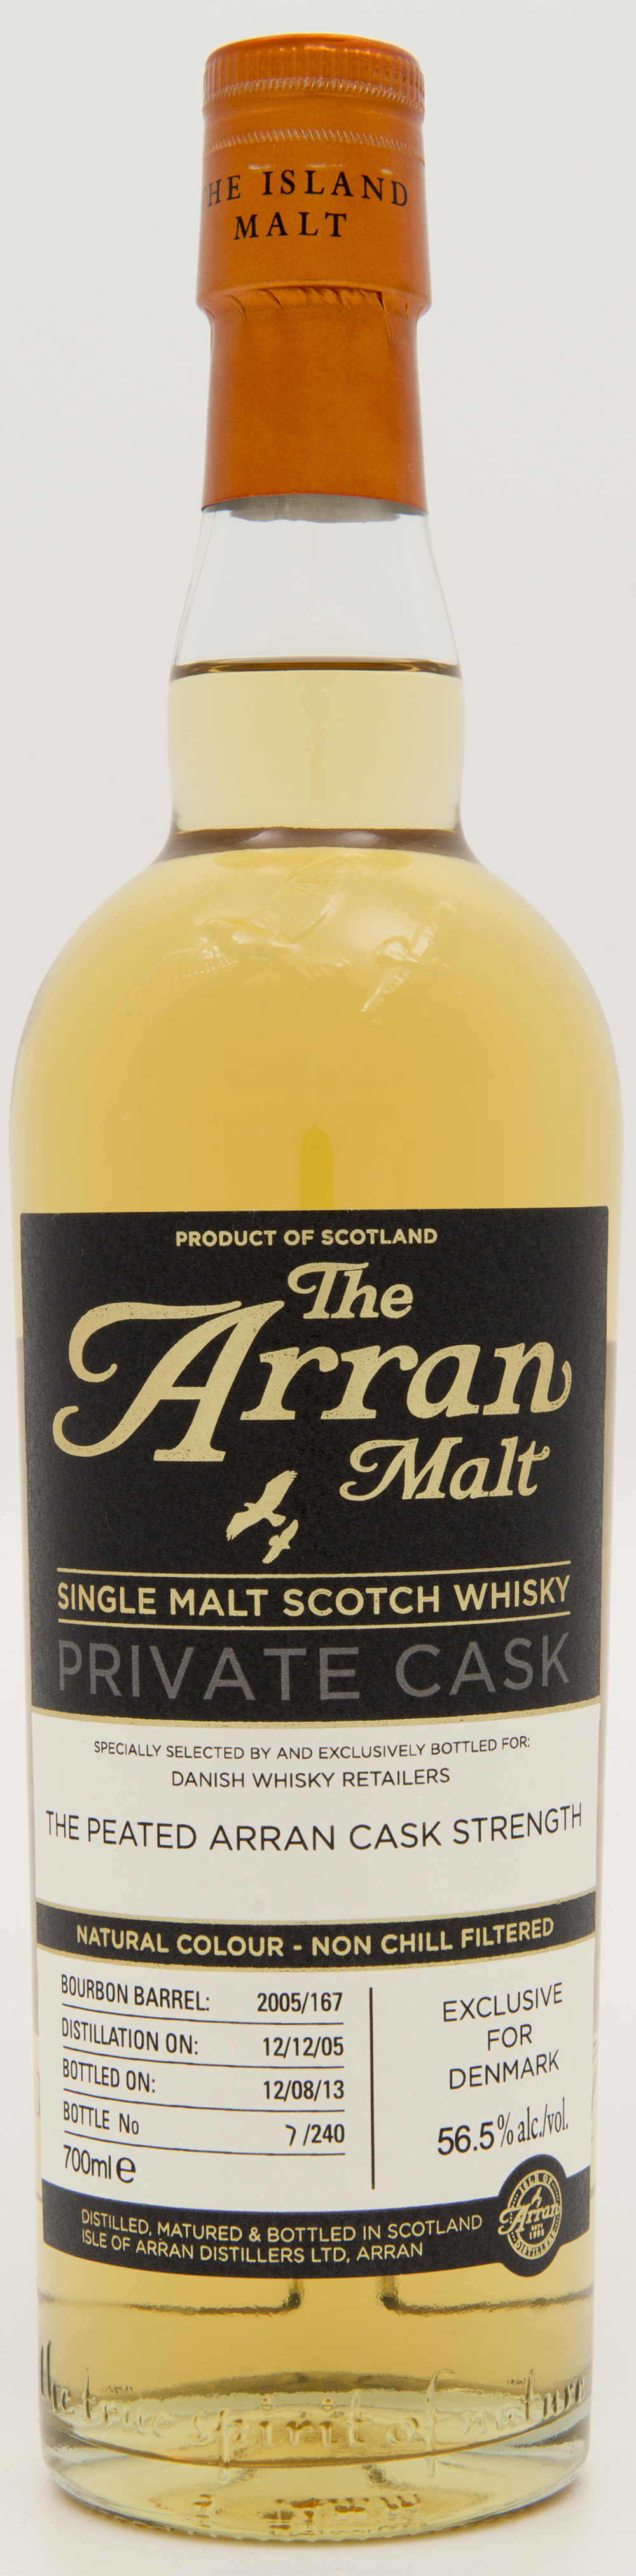 Billede: DSC_4822 - The Arran Malt - Private Cask - Danish Whisky Retailers The Peated Arran Cask Strength - bottle front.jpg